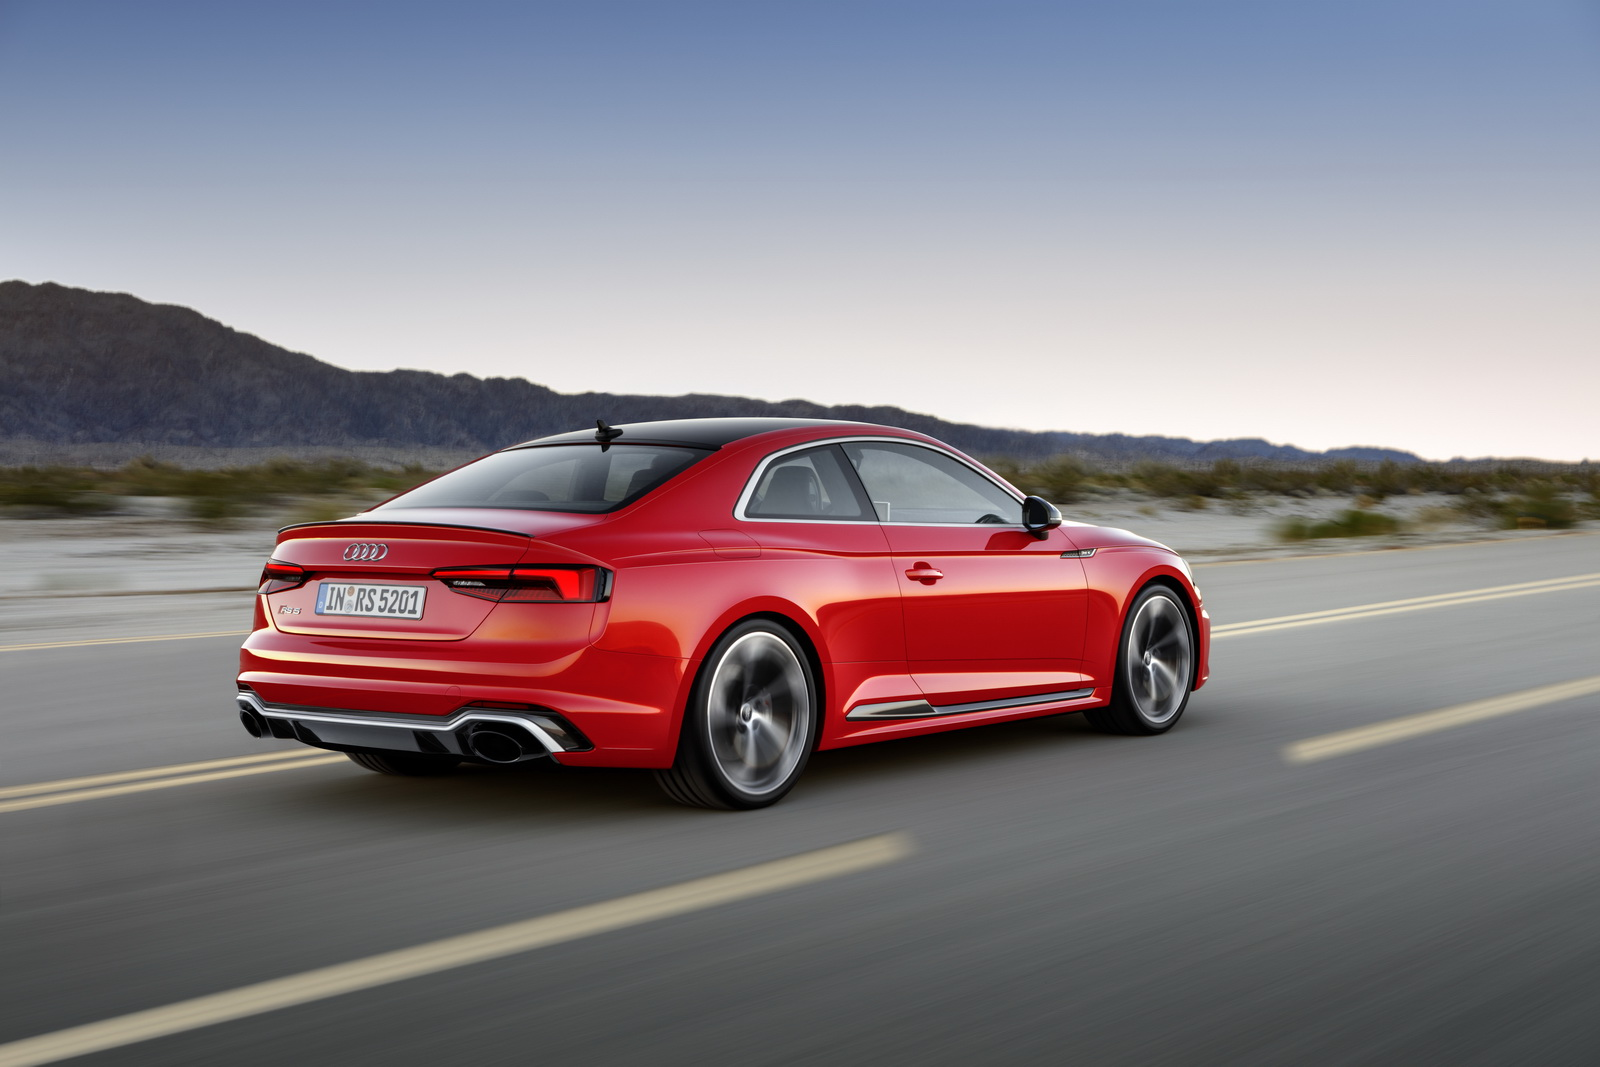 2017 Audi Rs5 Coupe Launched In Europe Priced From 80 900